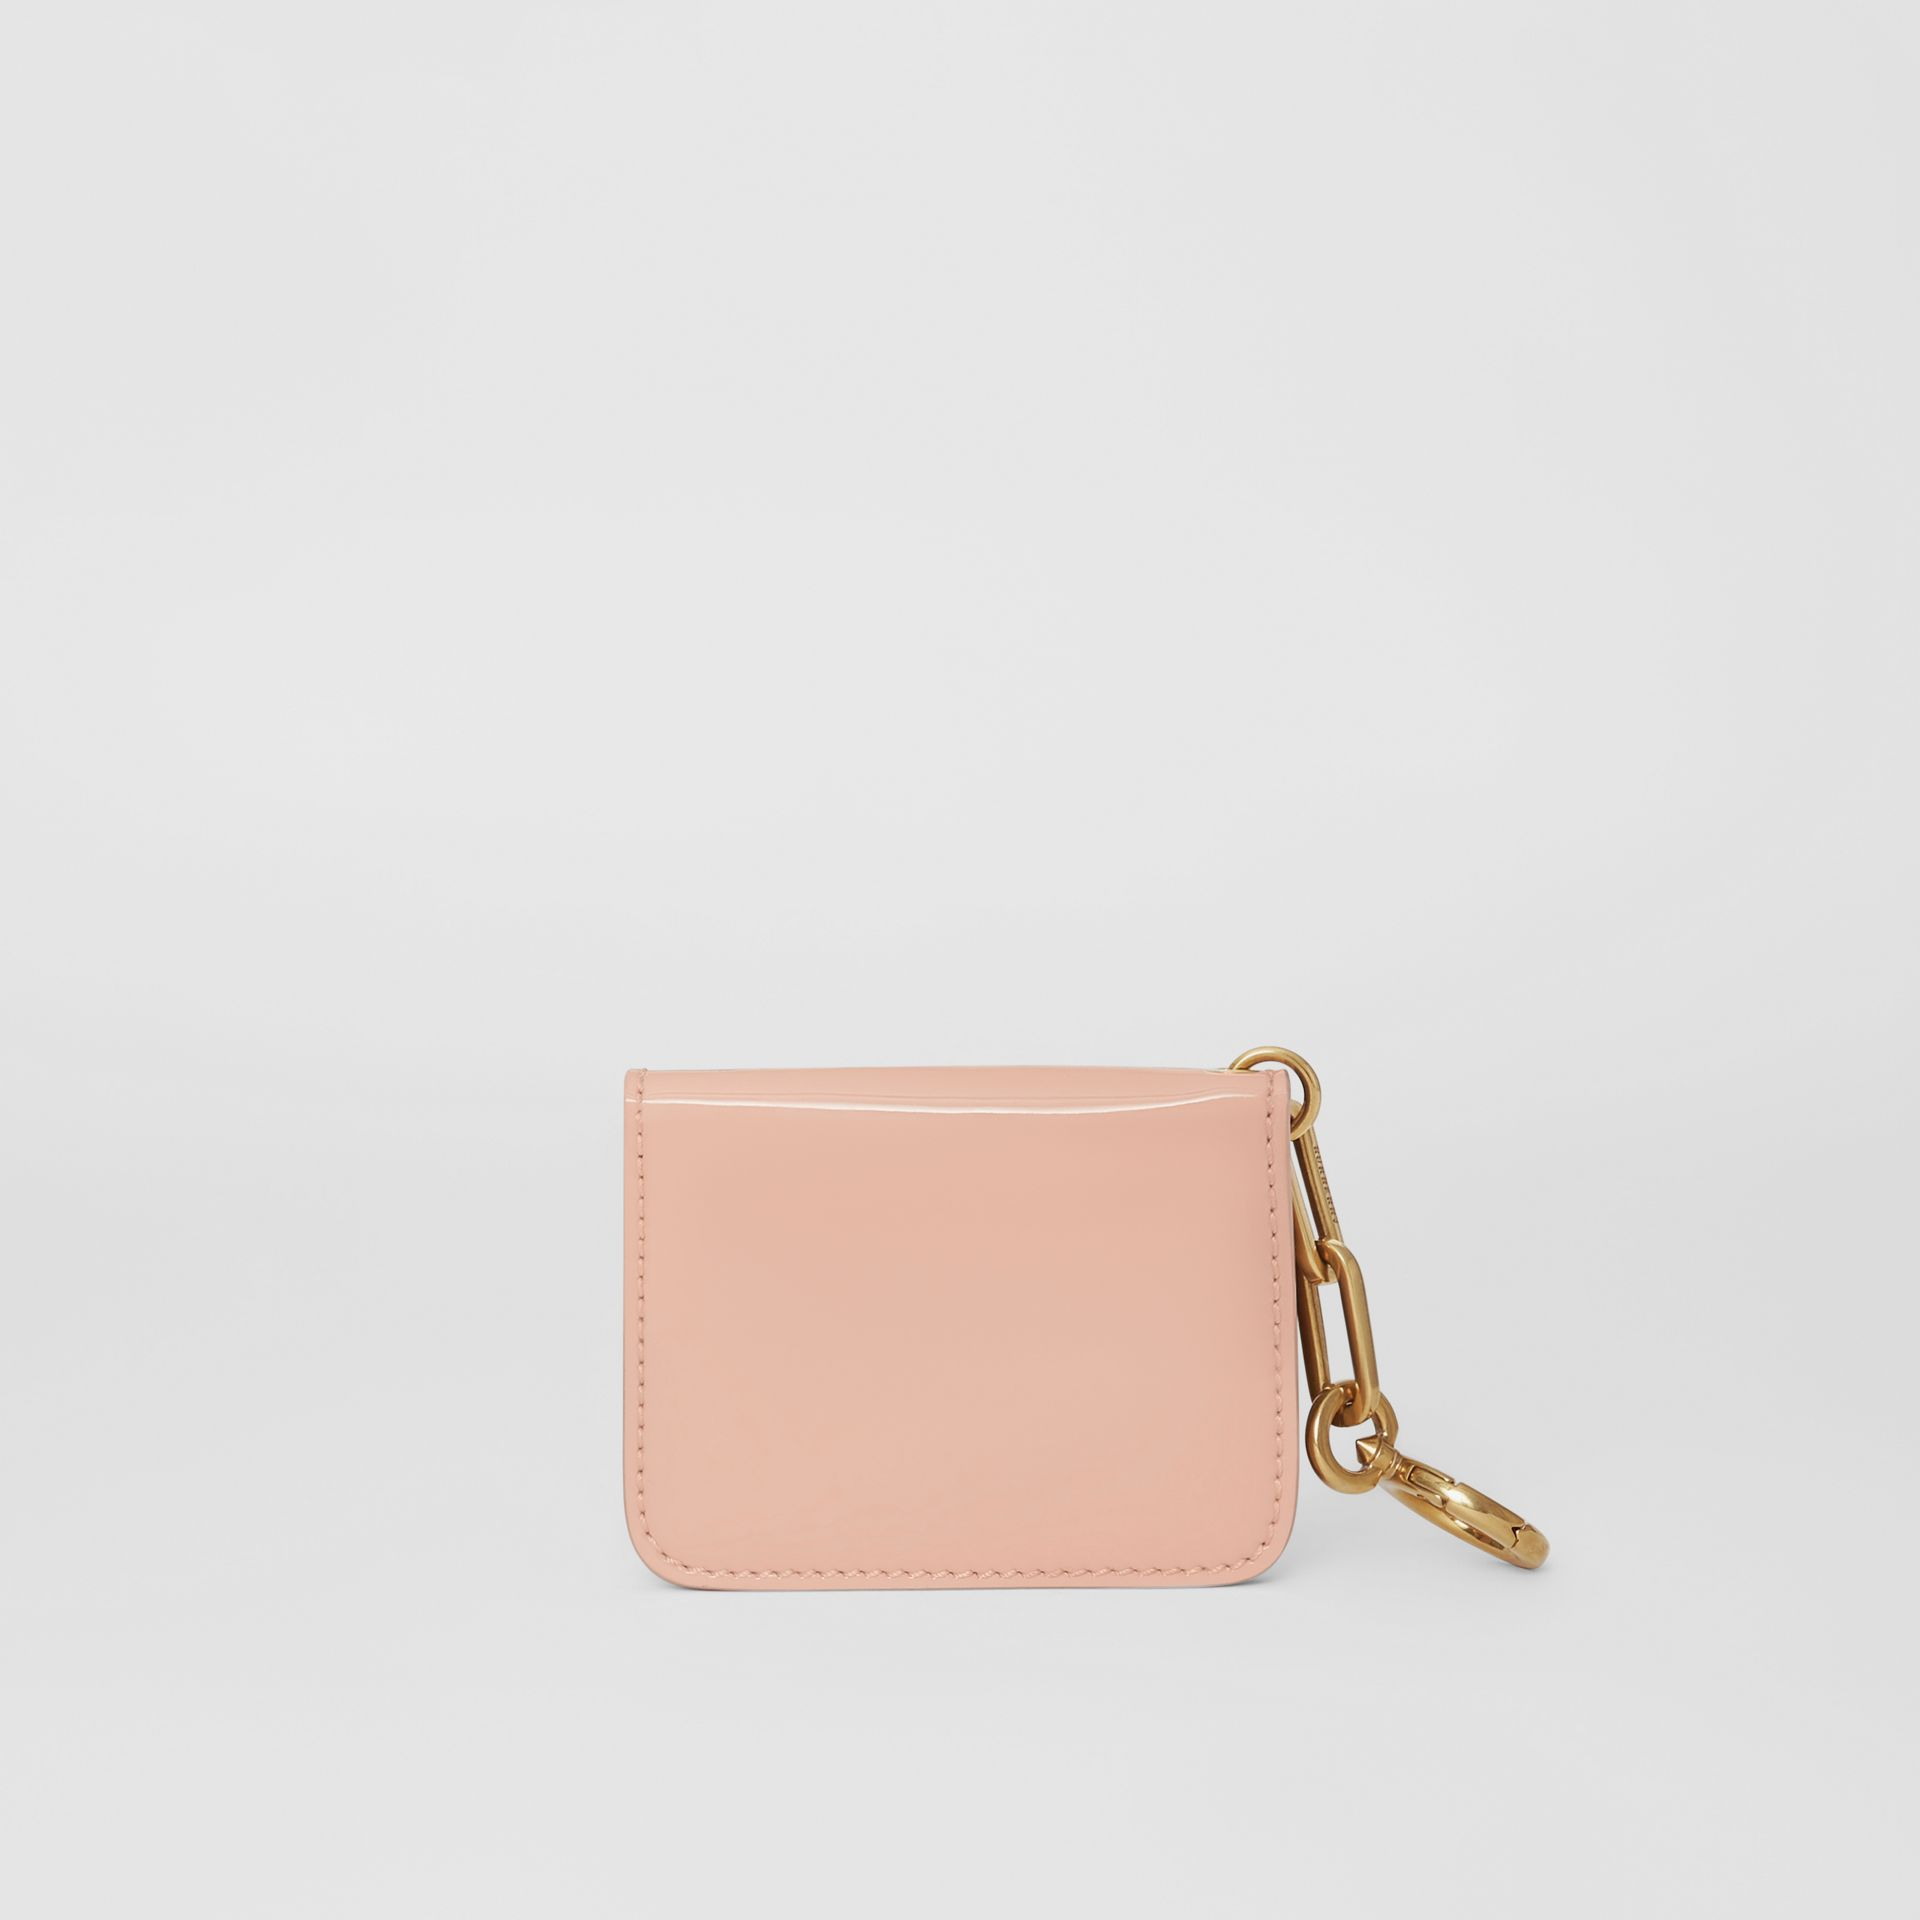 Link Detail Patent Leather ID Card Case Charm in Pale Fawn Pink - Women | Burberry United States - gallery image 2